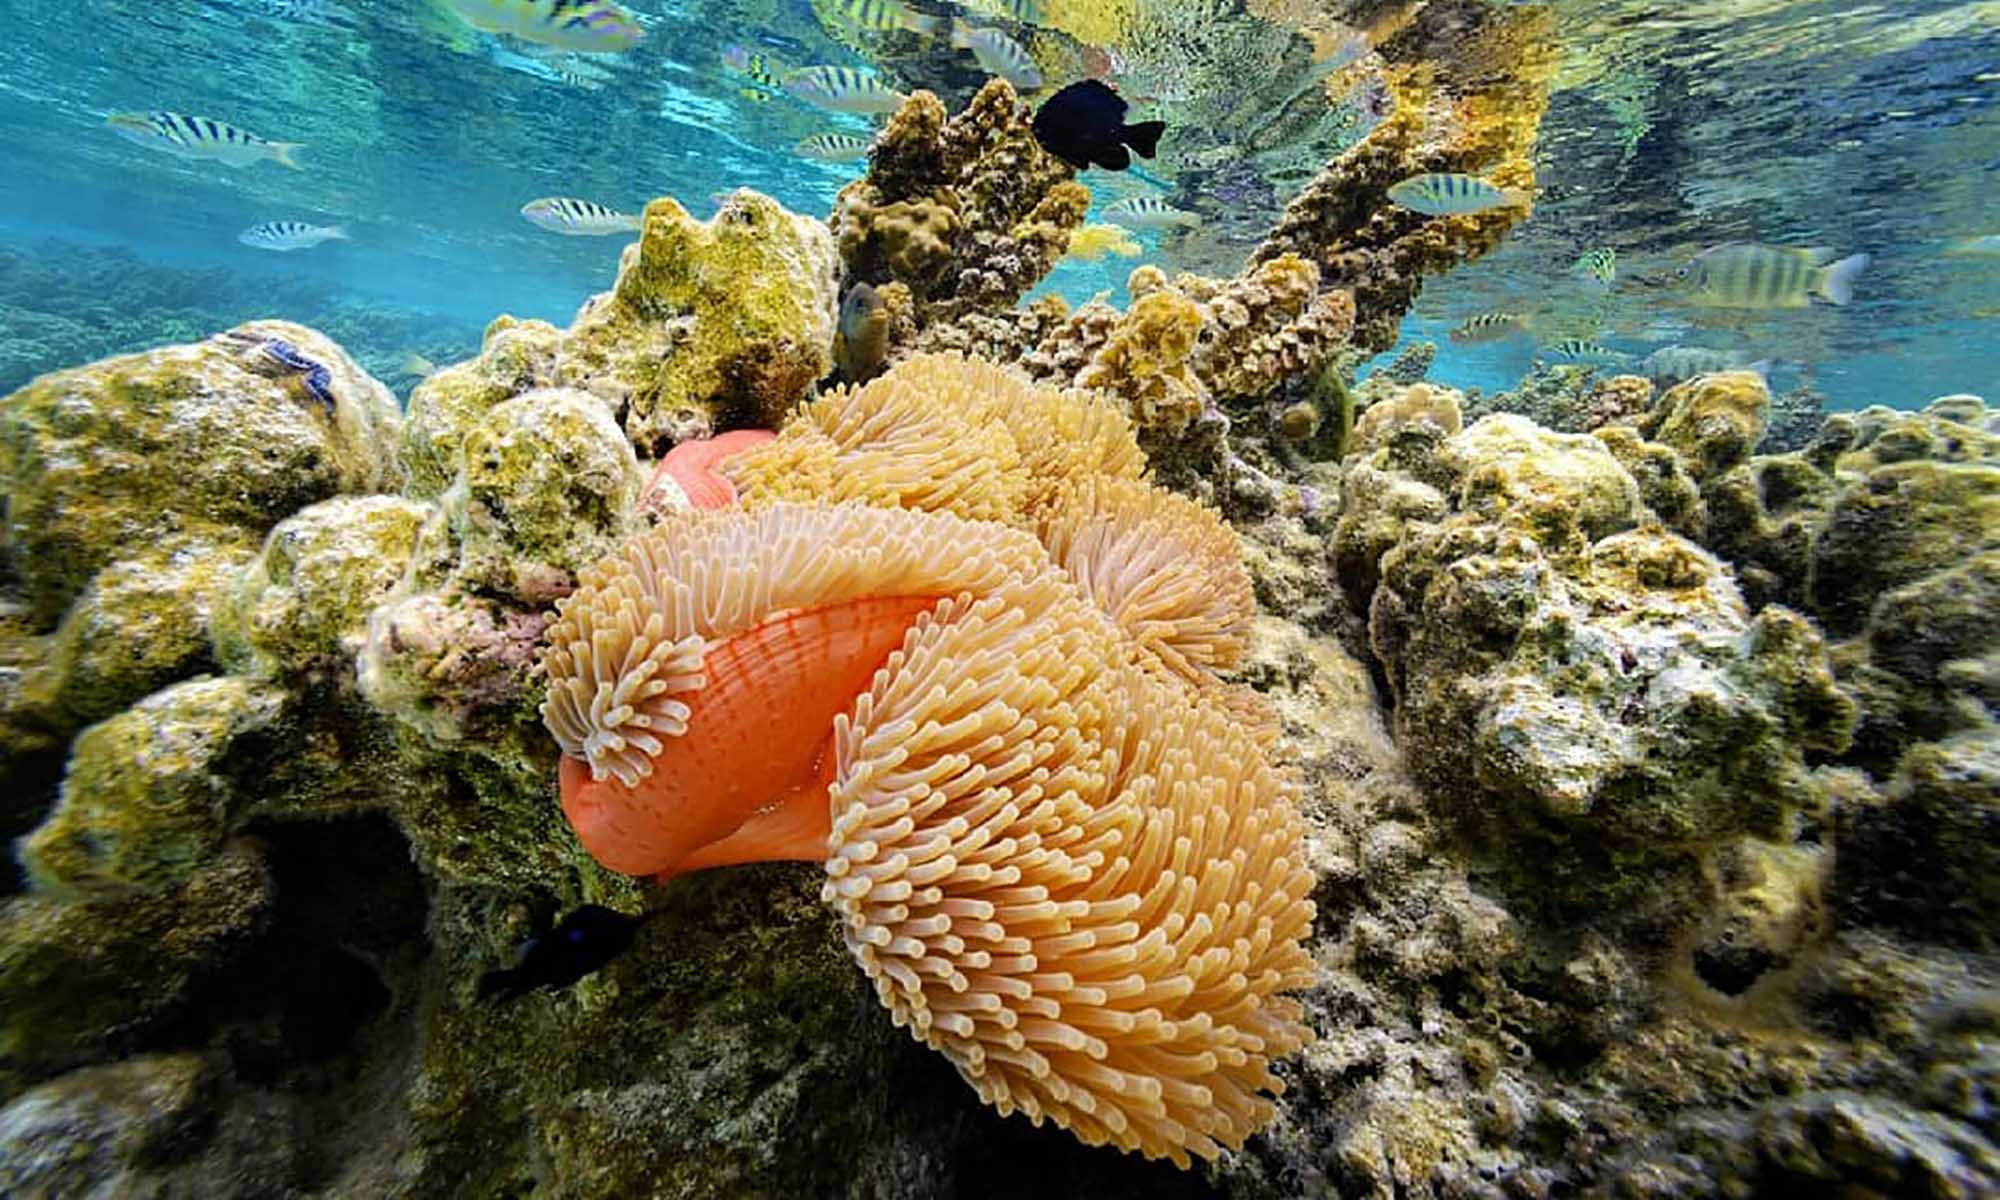 Le Taha'a Island Resort & Spa, Drift Snorkeling in the Coral Garden